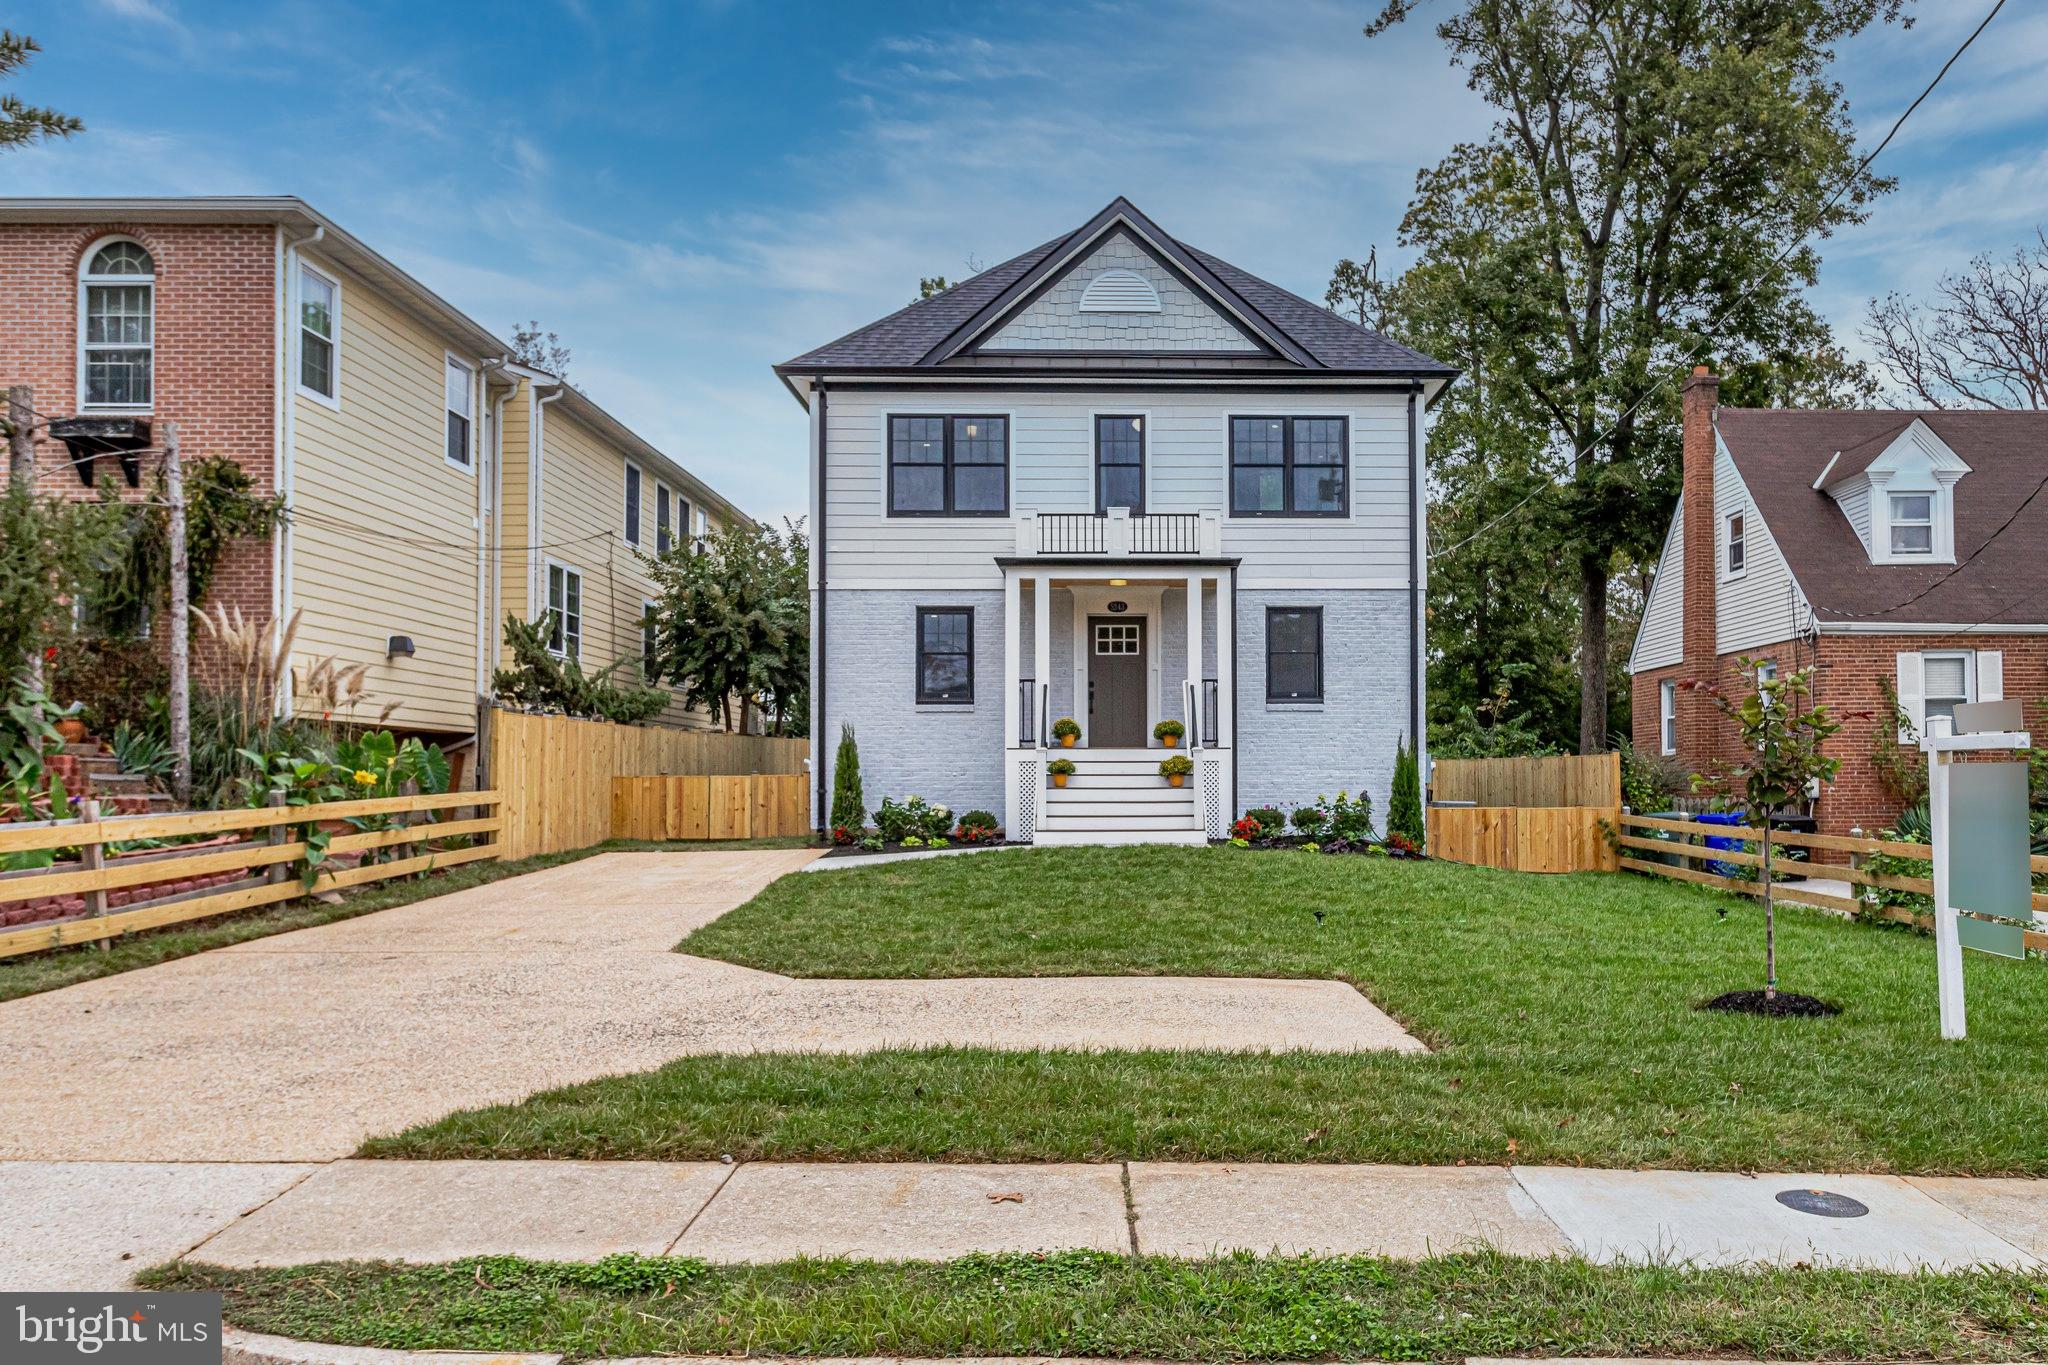 AMAZING NEW HOME LOADED WITH CUSTOM UPGRADES THROUGHOUT!!  ONLY 1 MILE TO BALLSTON SHOPPING/DINING/M